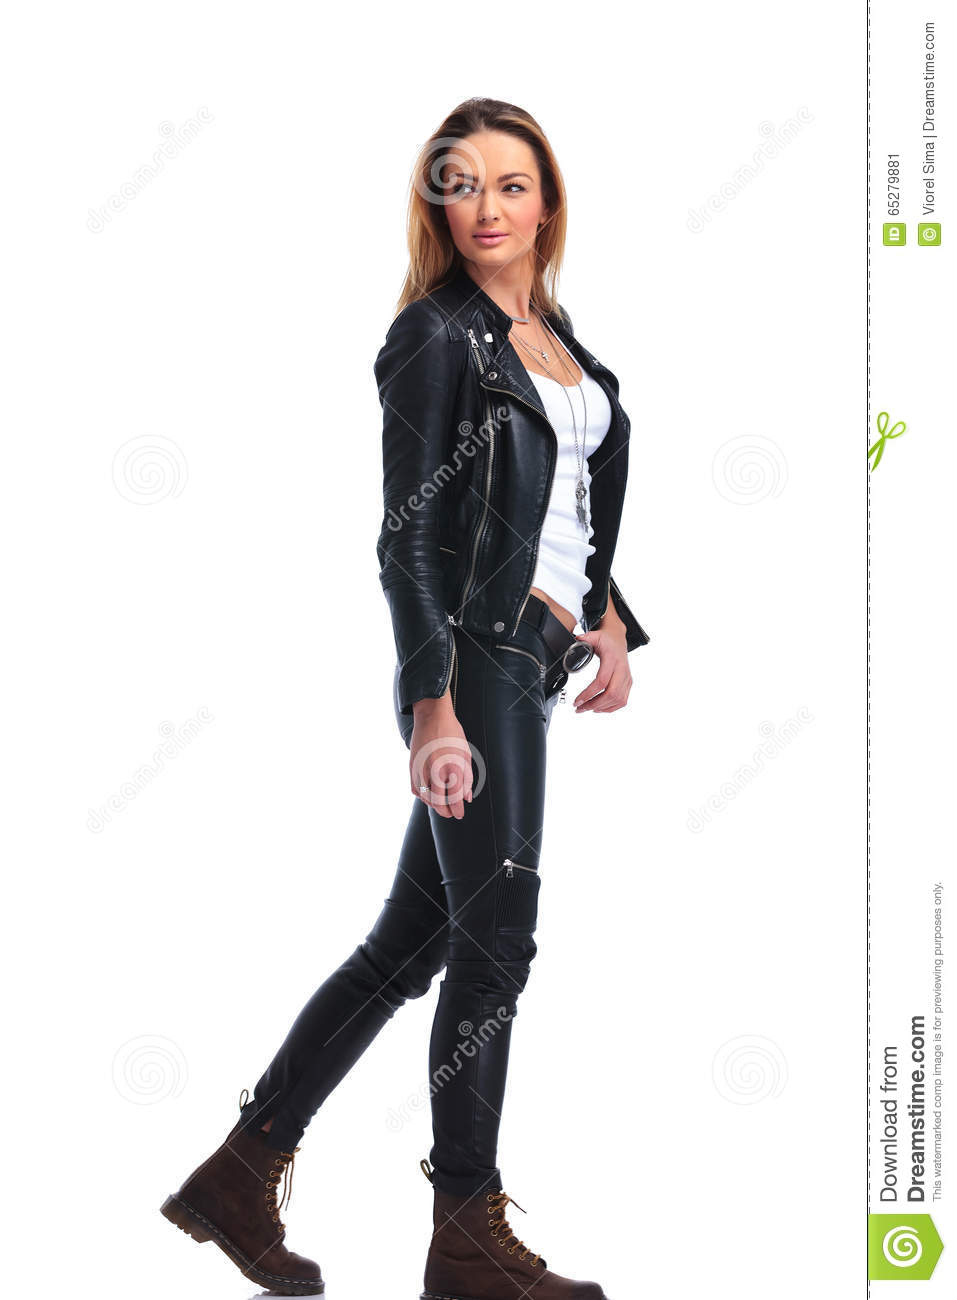 Leather Pose 92